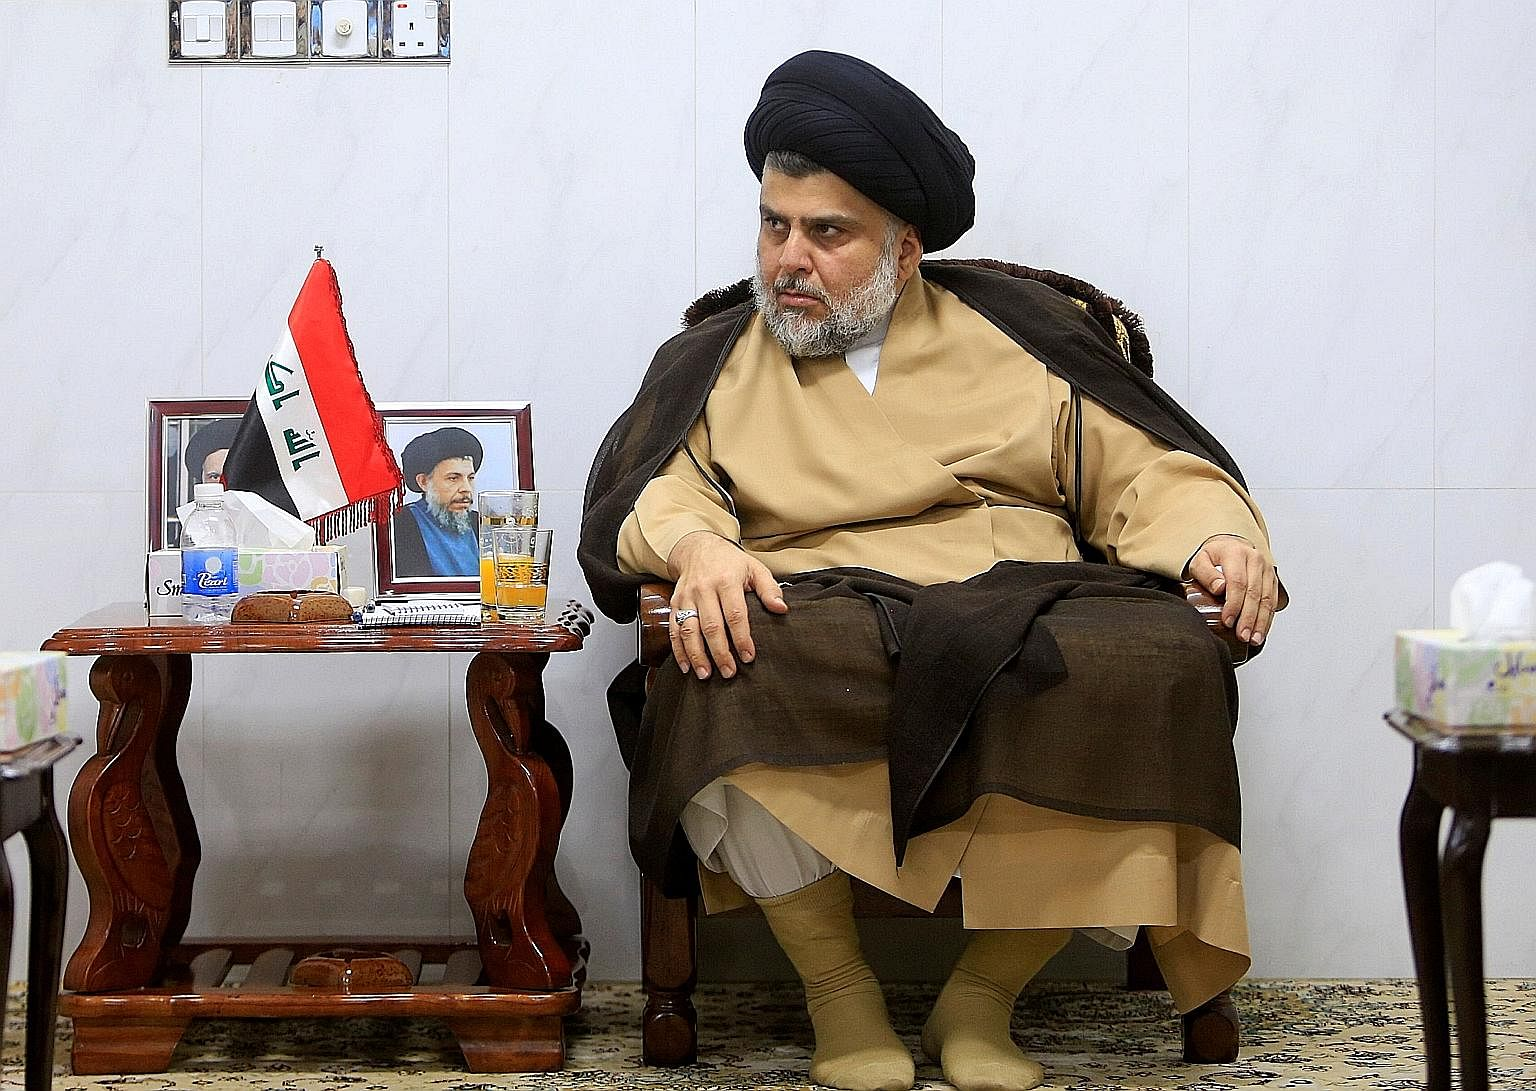 Mr Moqtada al-Sadr cannot become prime minister as he did not run in the election, but his bloc's victory puts him in a position to have a strong say in negotiations to form a coalition.